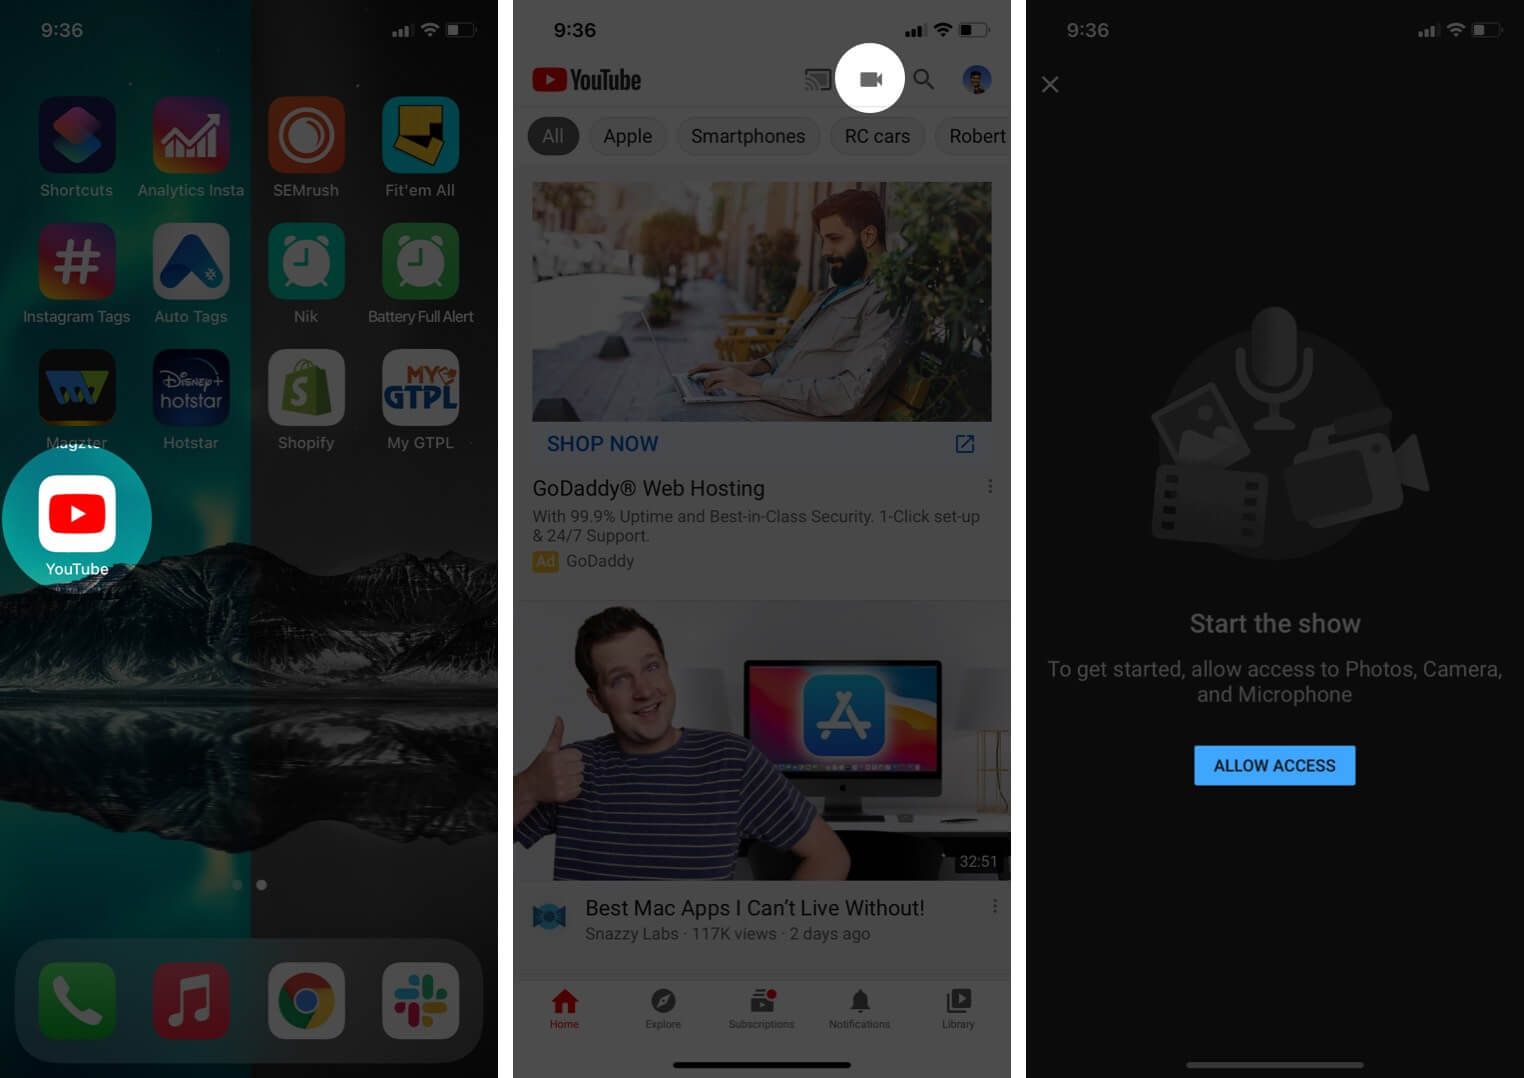 open youtube app tap on record and then tap on allow access on iphone